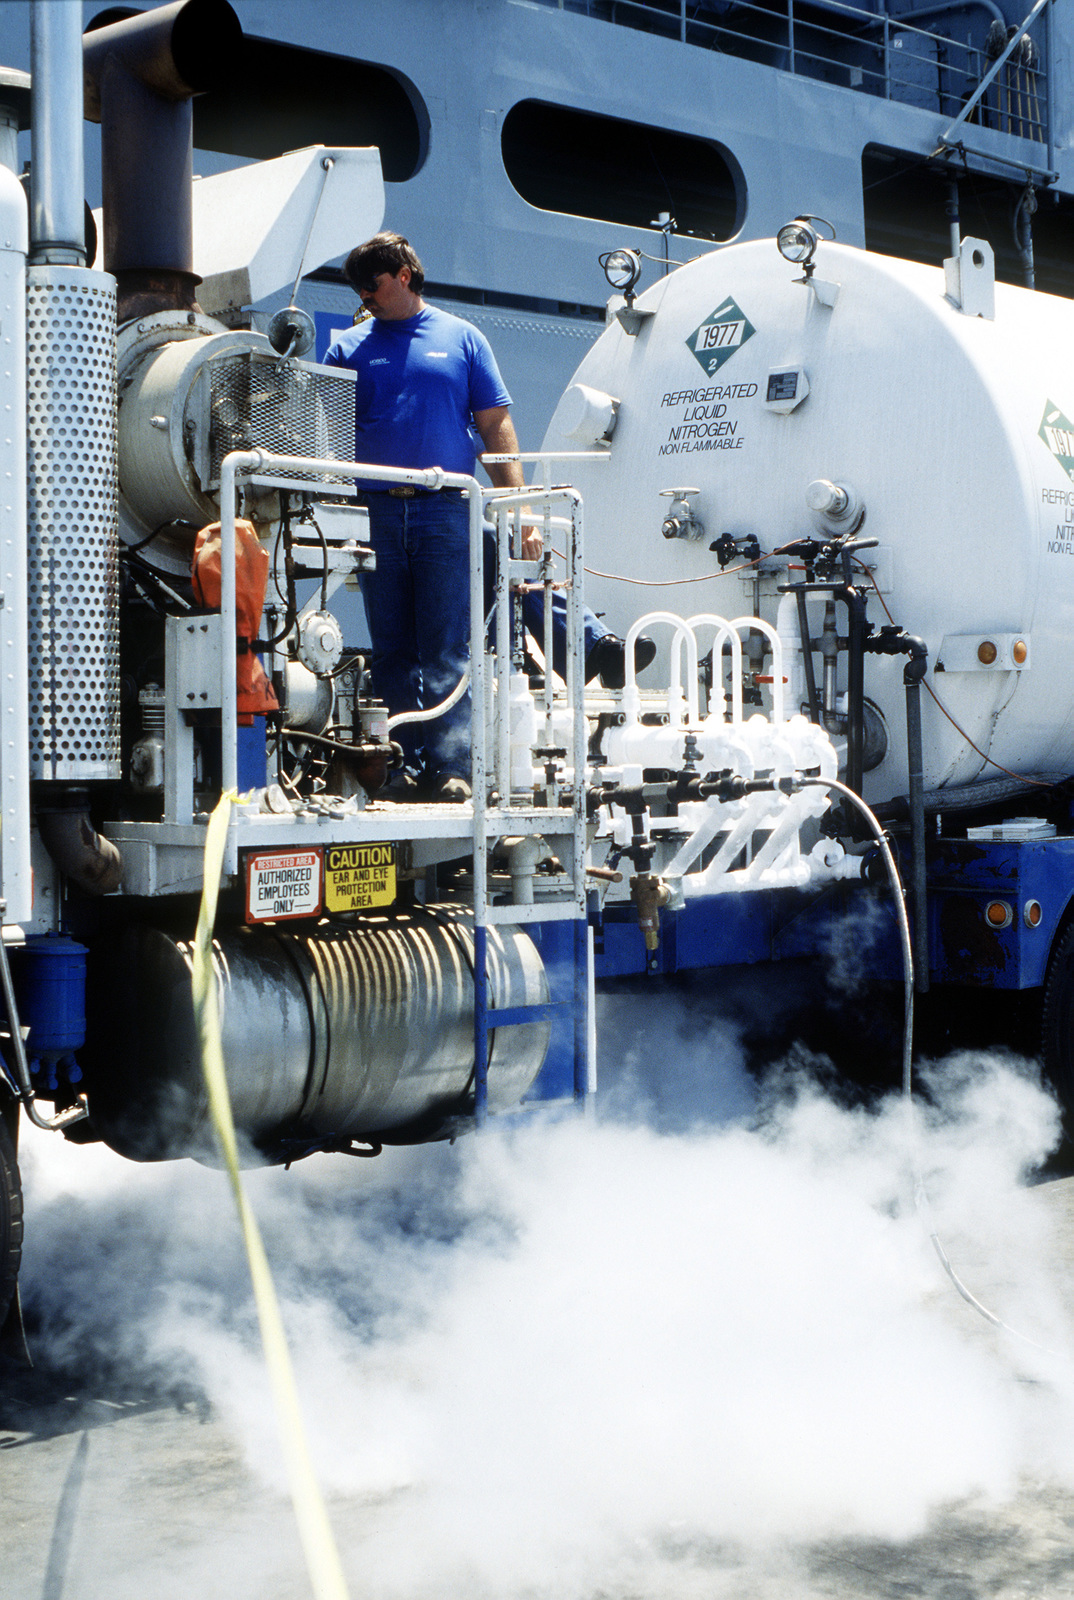 A worker operates the controls of a delivery truck as the nuclear-powered strategic missile submarine USS NEVADA (SSBN 733) takes on liquid nitrogen while undergoing maintenance at Long Beach Naval Shipyard